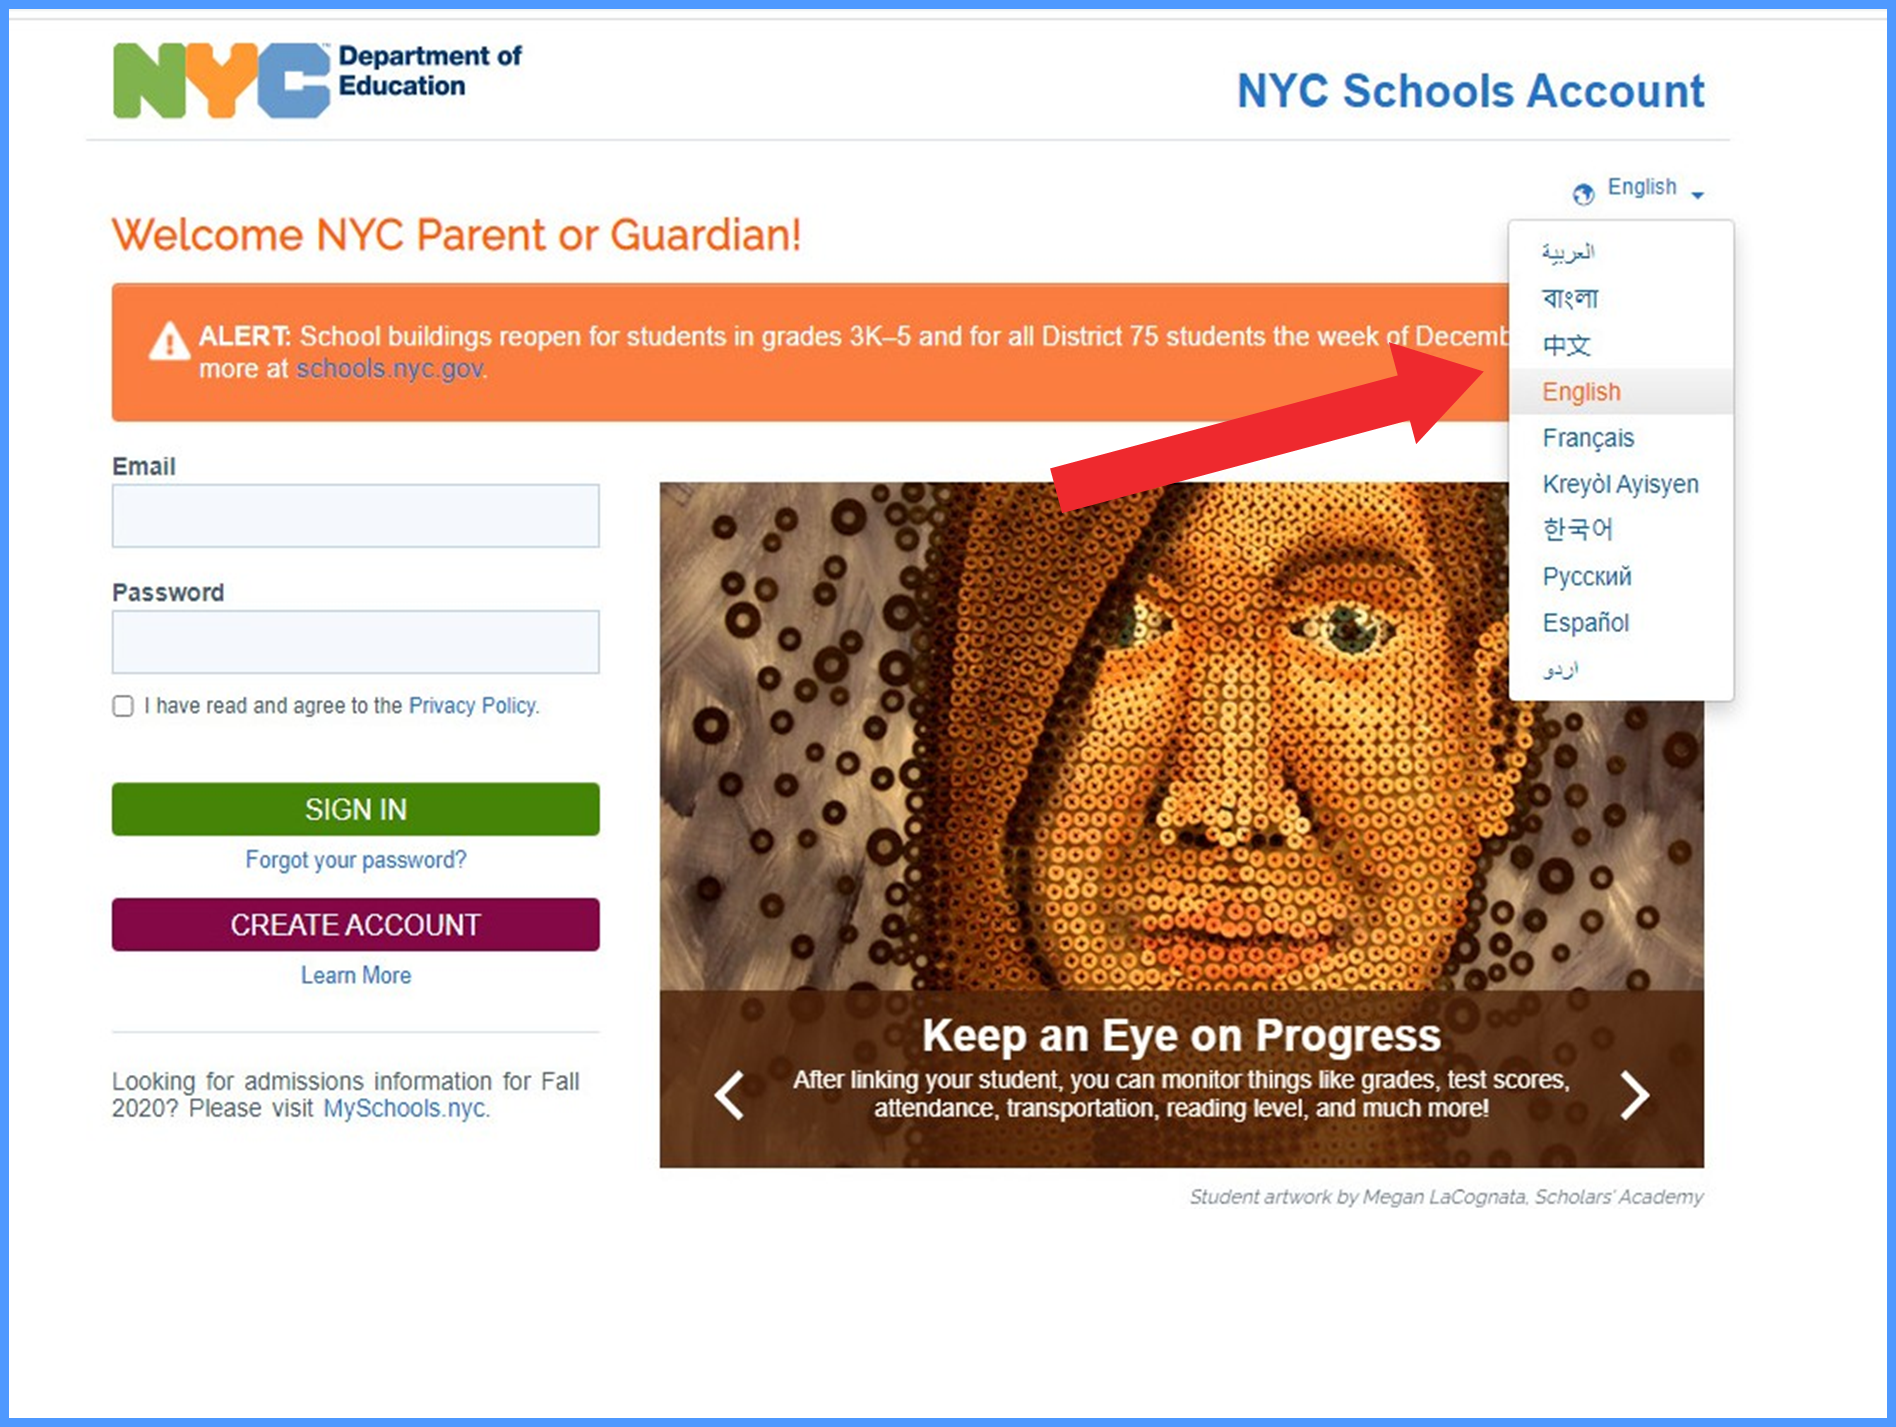 NYC School account log in page with translations drop down menu